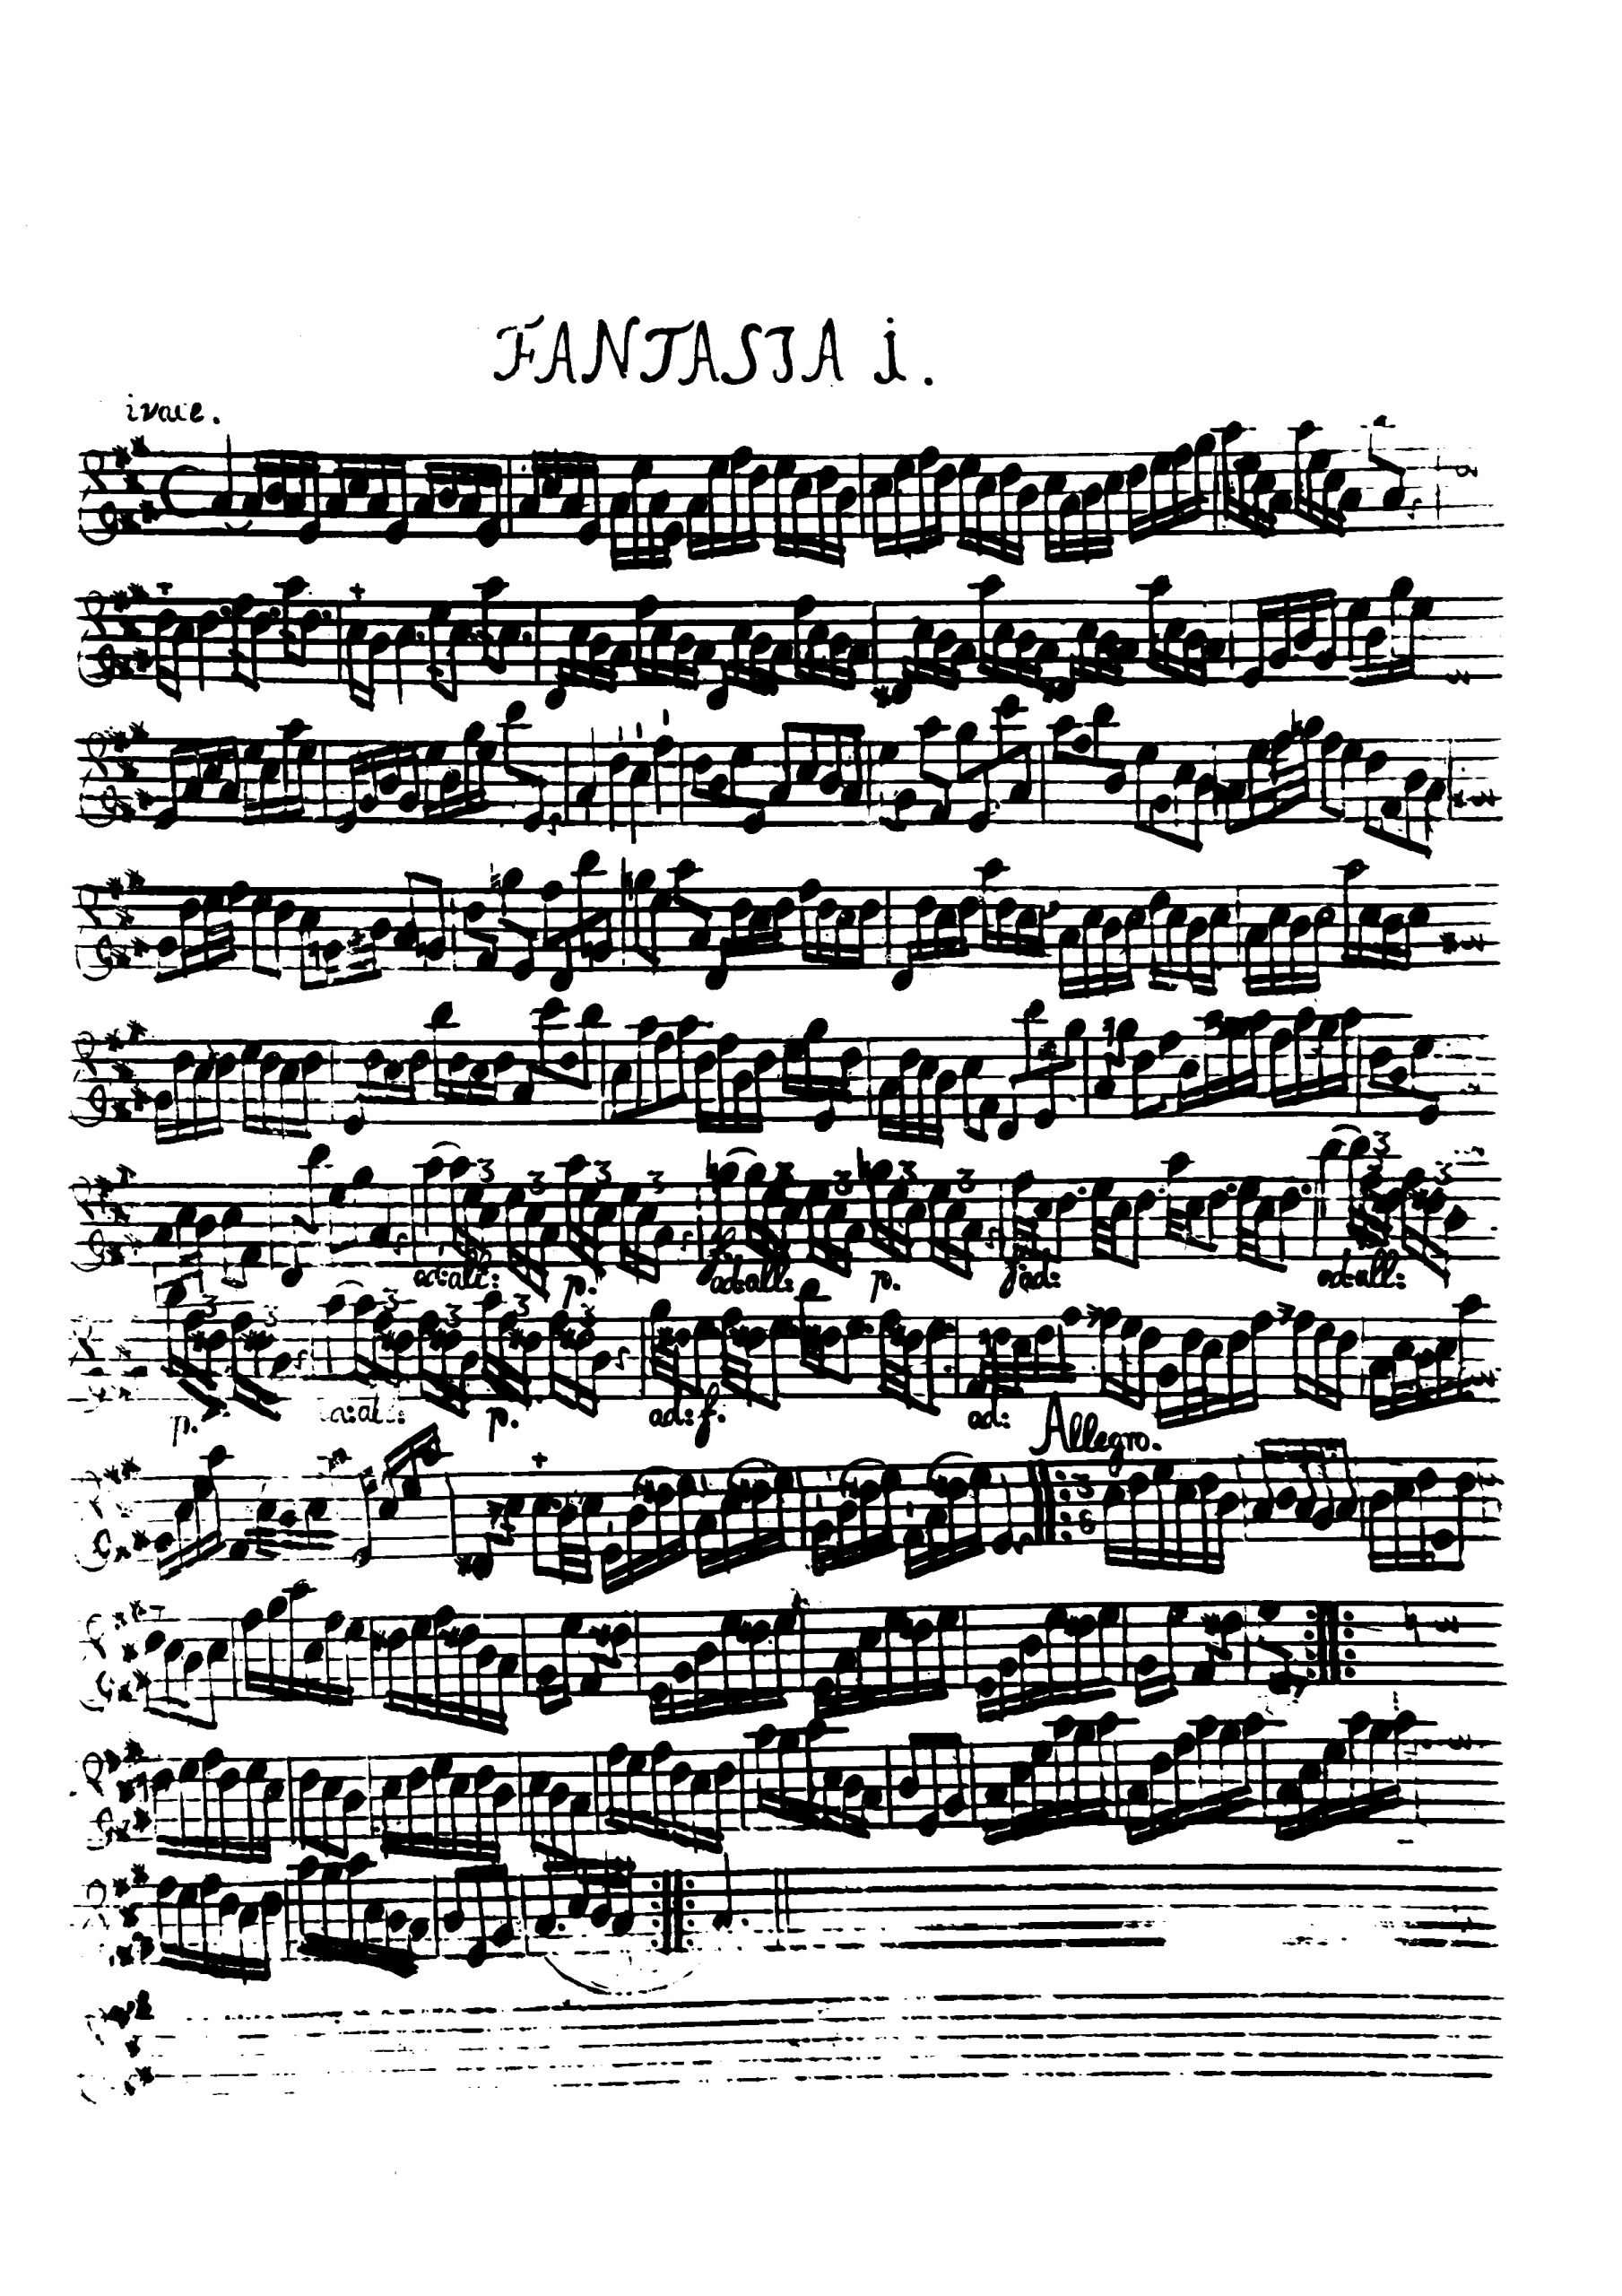 Telemann, Georg Philipp - 12 Fantasias for Flute without Bass, TWV 40:2-13